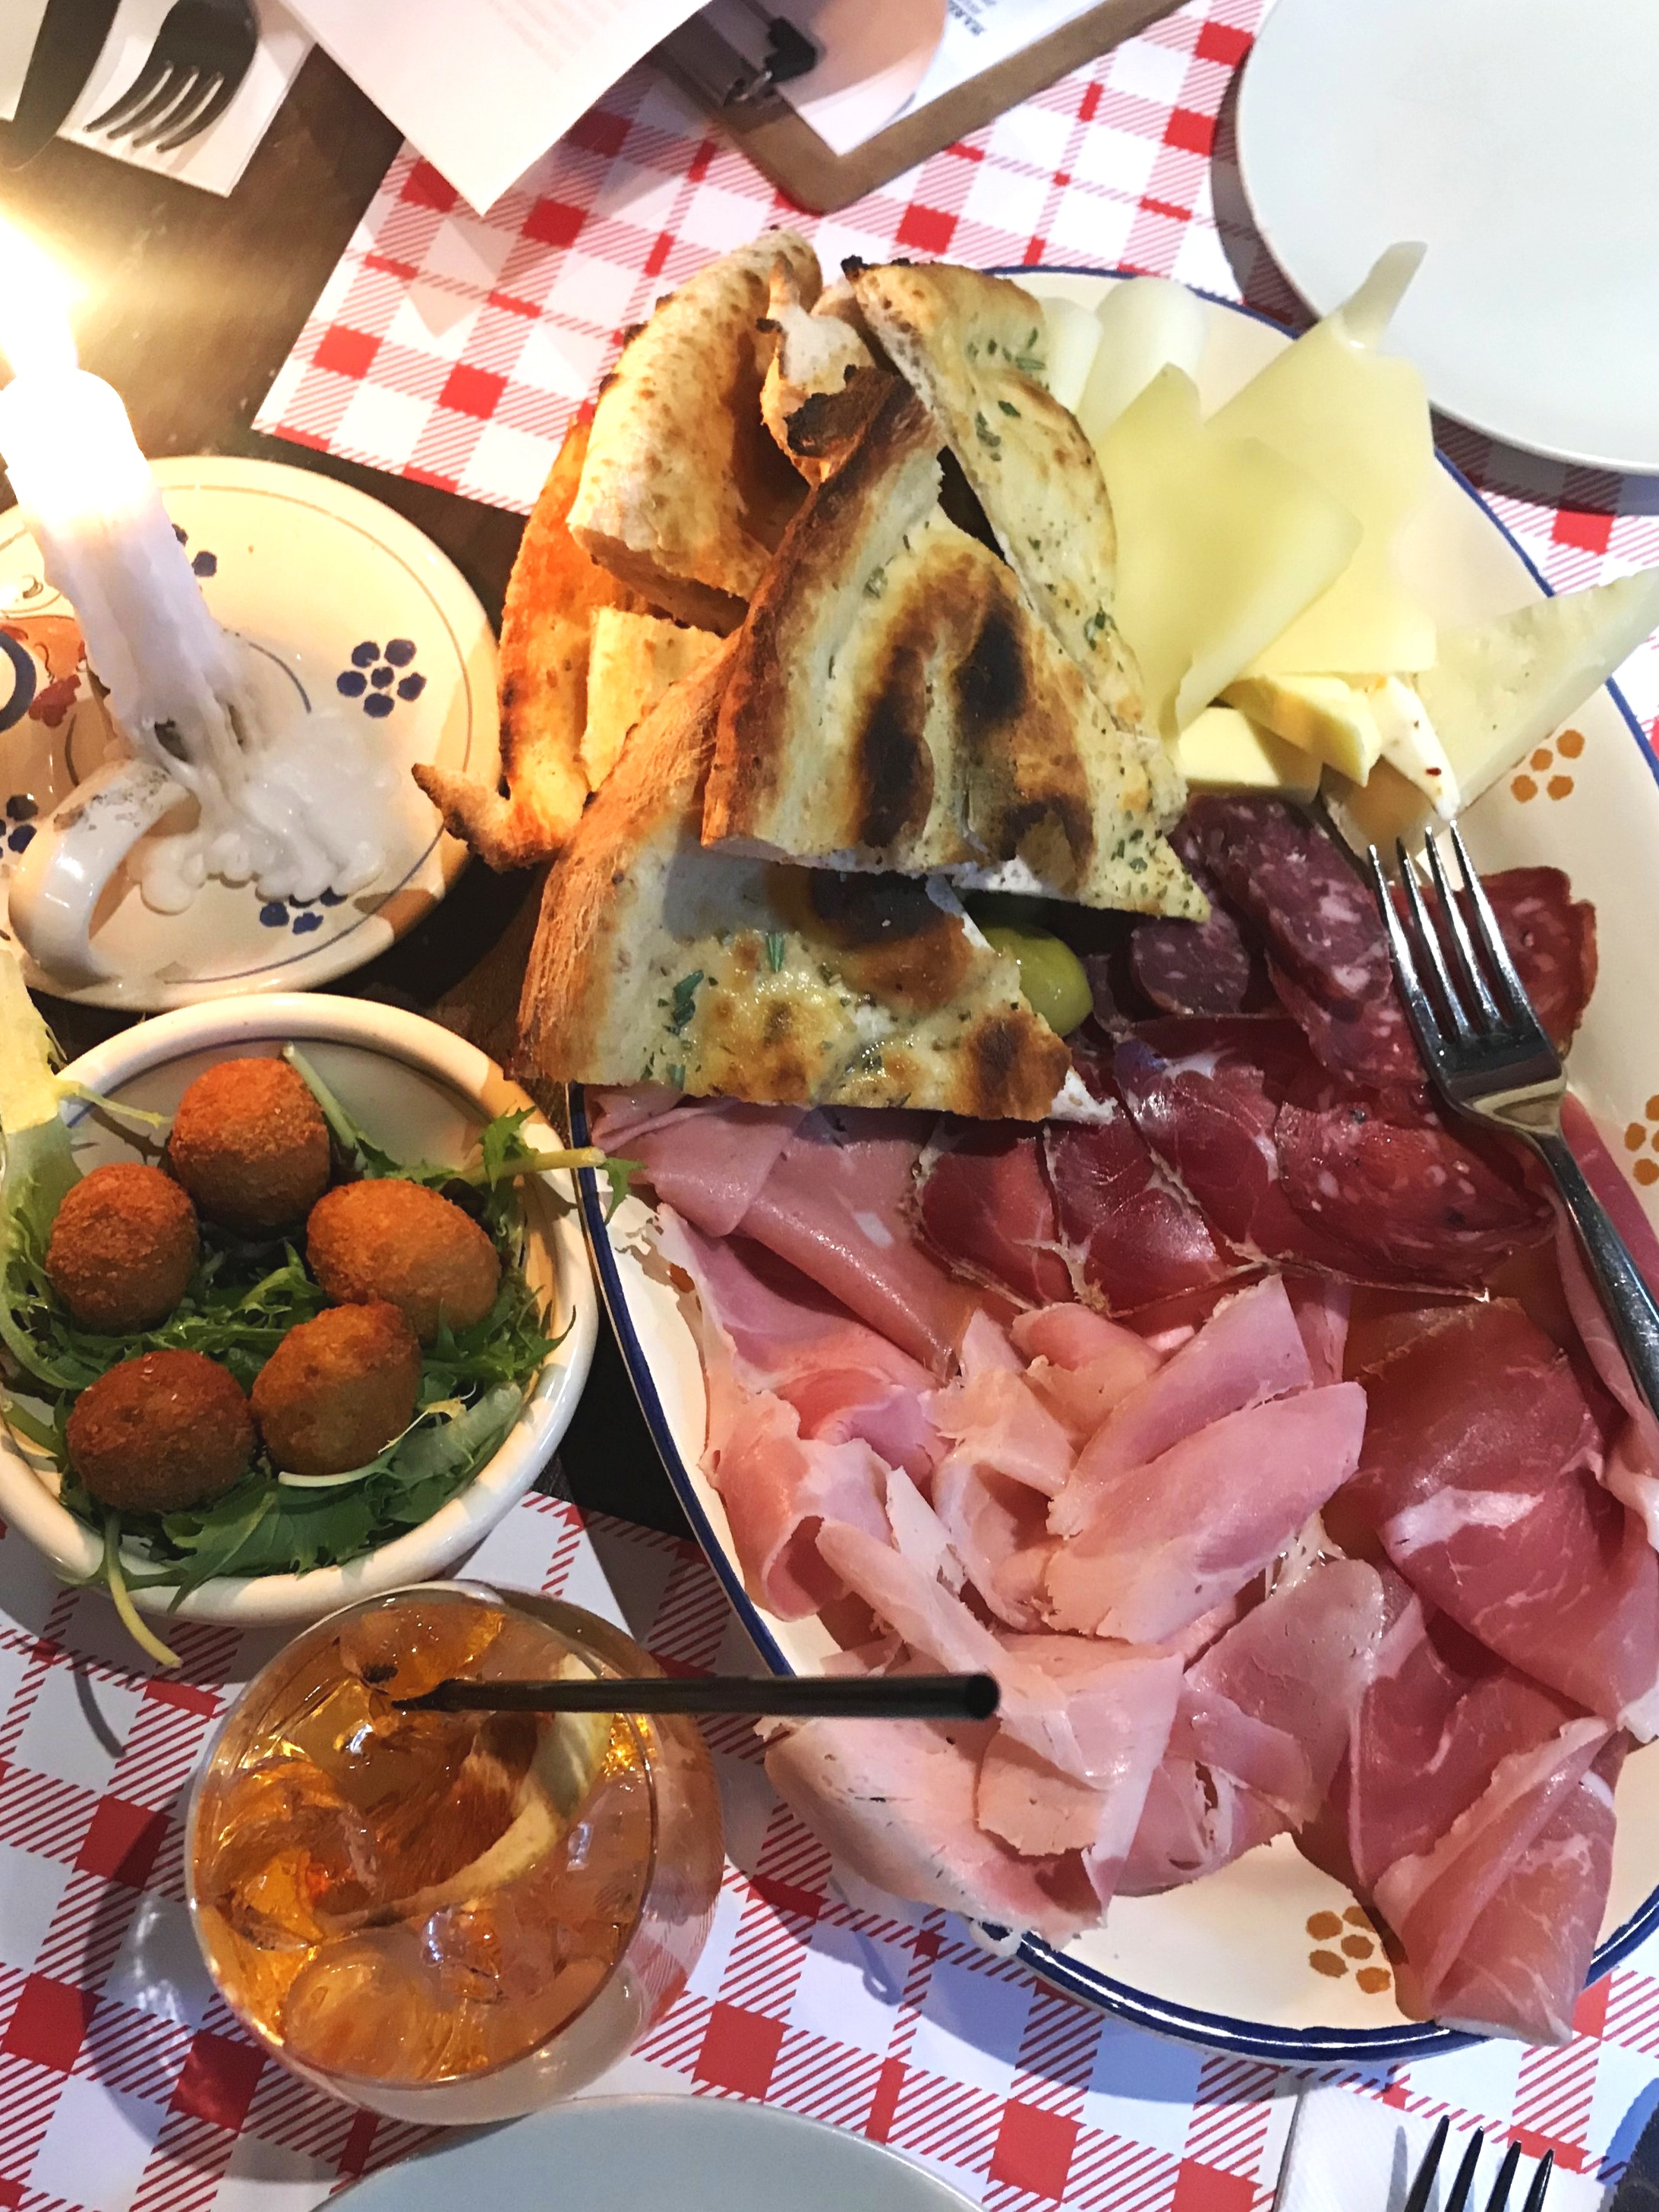 Cheese & meats board, fried olives (delicious!) and an Aperol Spritz at Pizzica.